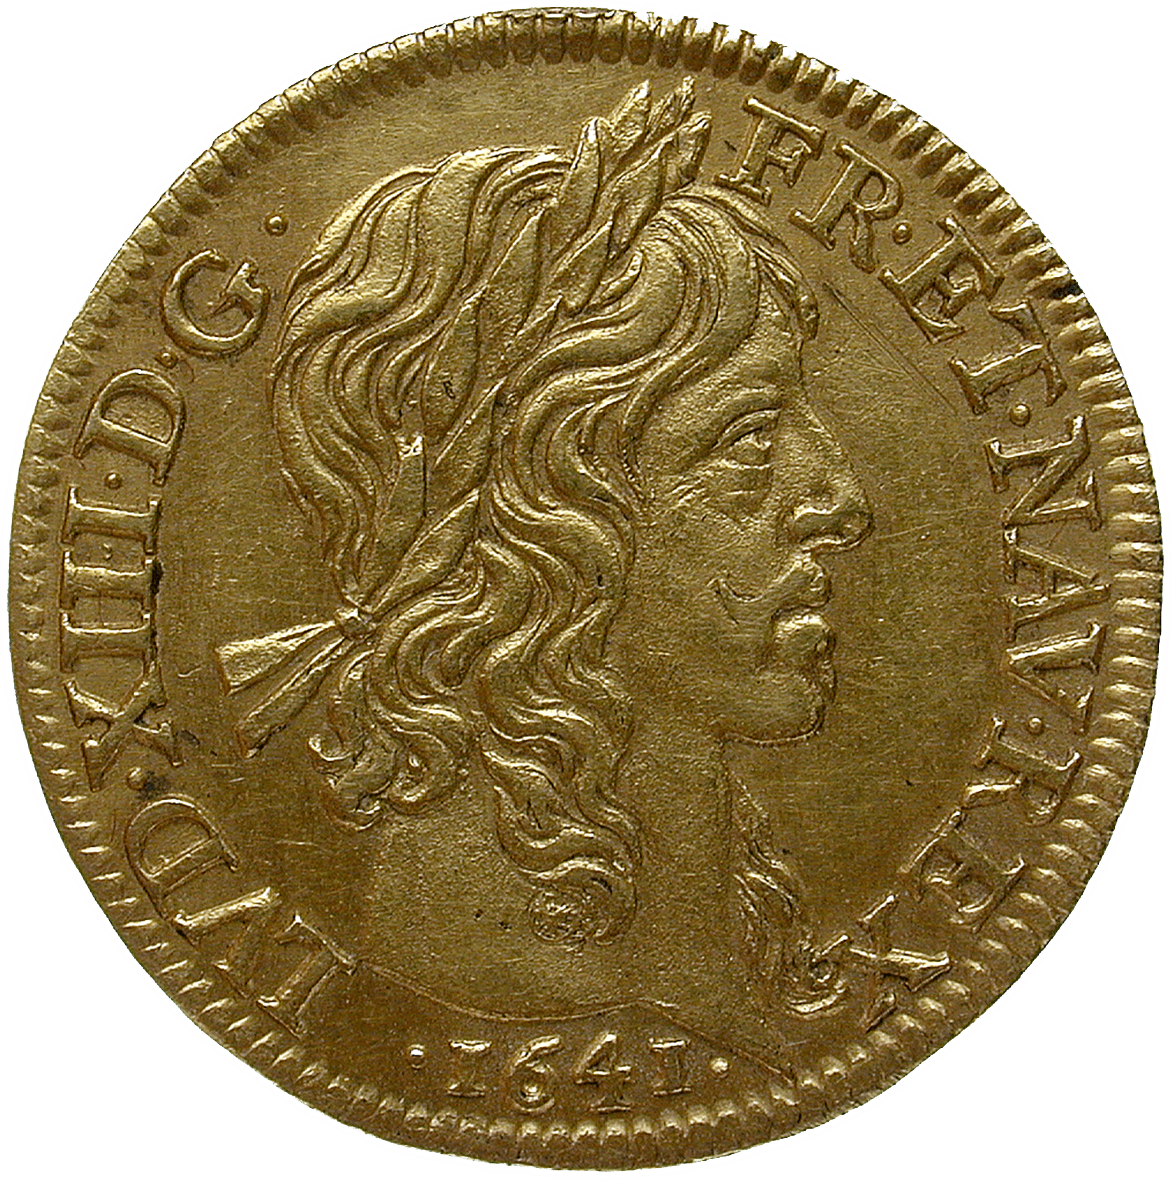 Kingdom of France, Louis XIII, Louis d'or 1641 (obverse)